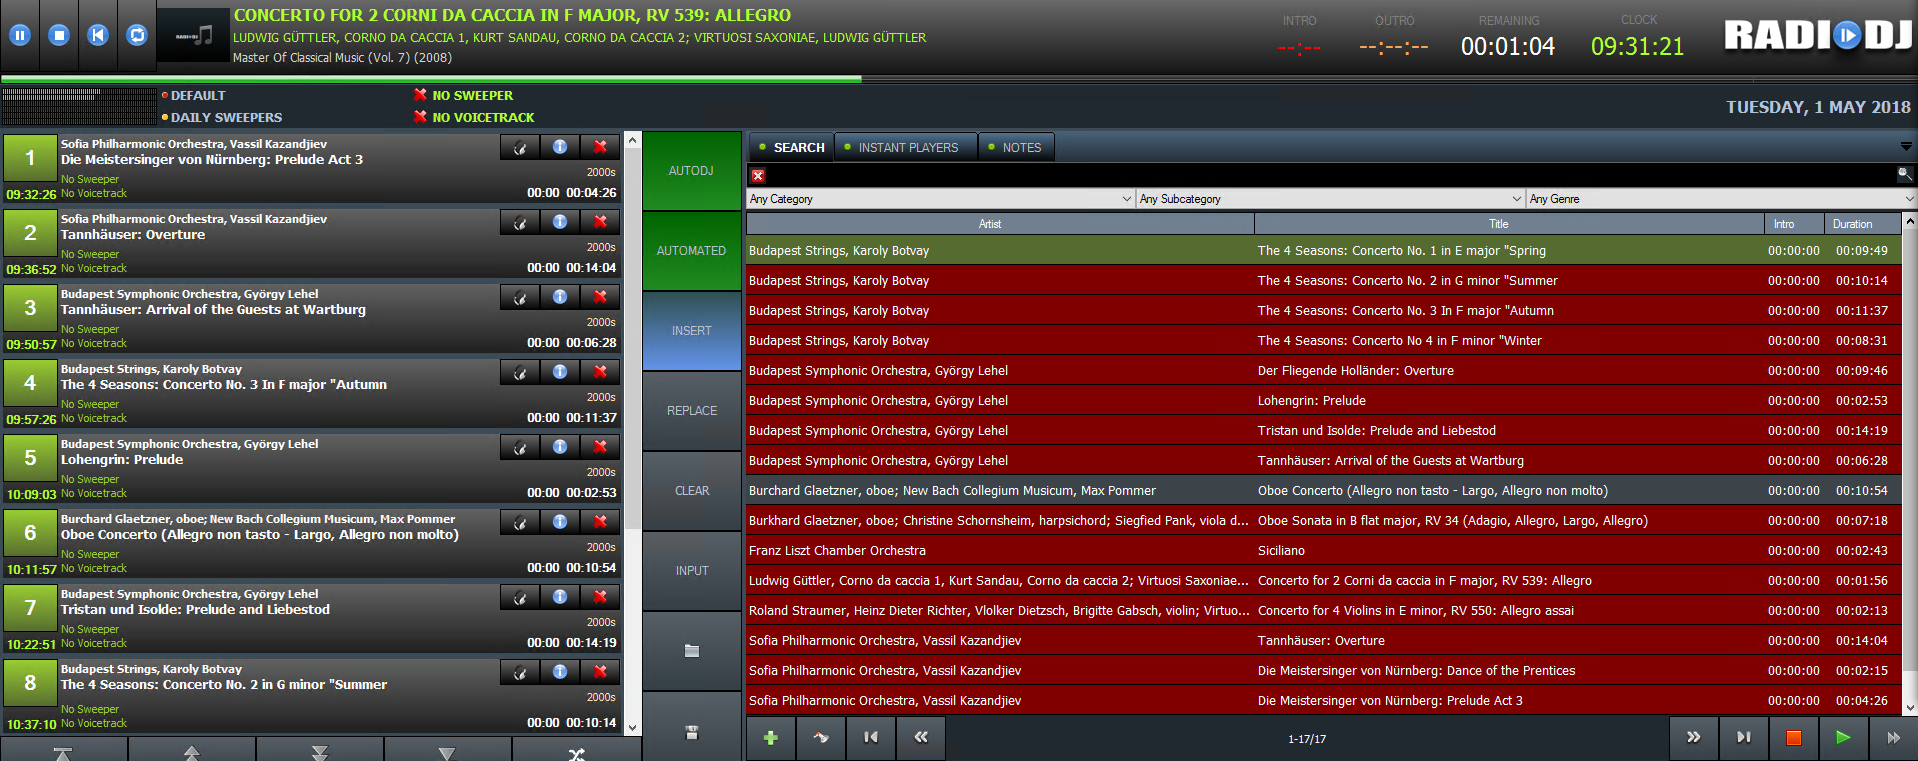 RadioDJ Playout and Automation system screenshot